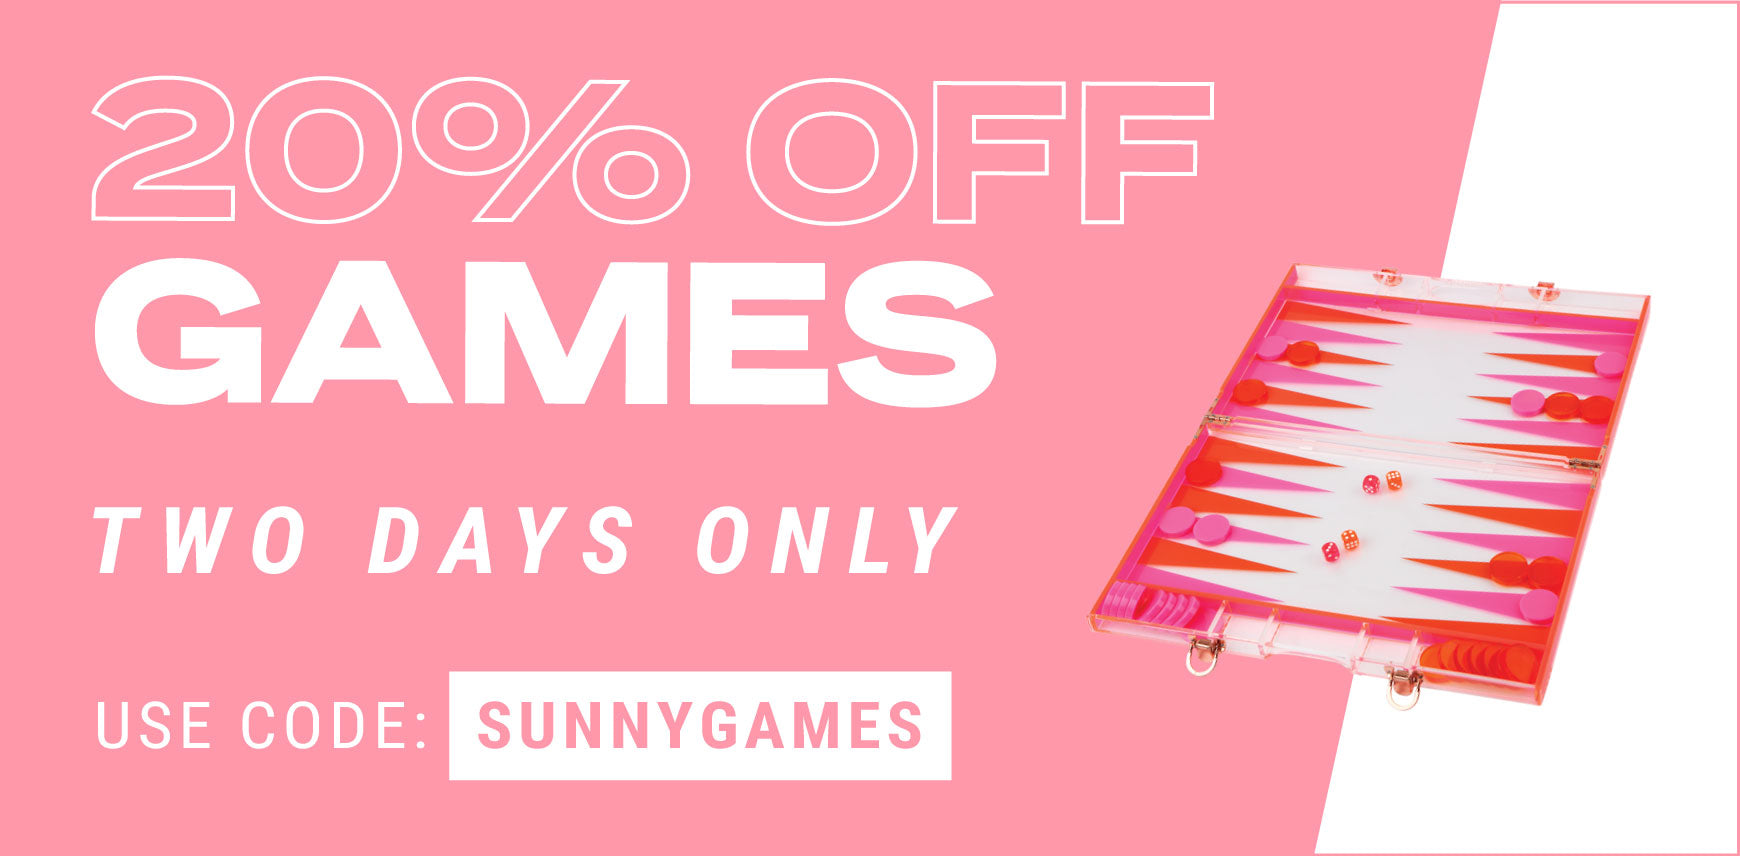 20 % Off Games Two Days Only